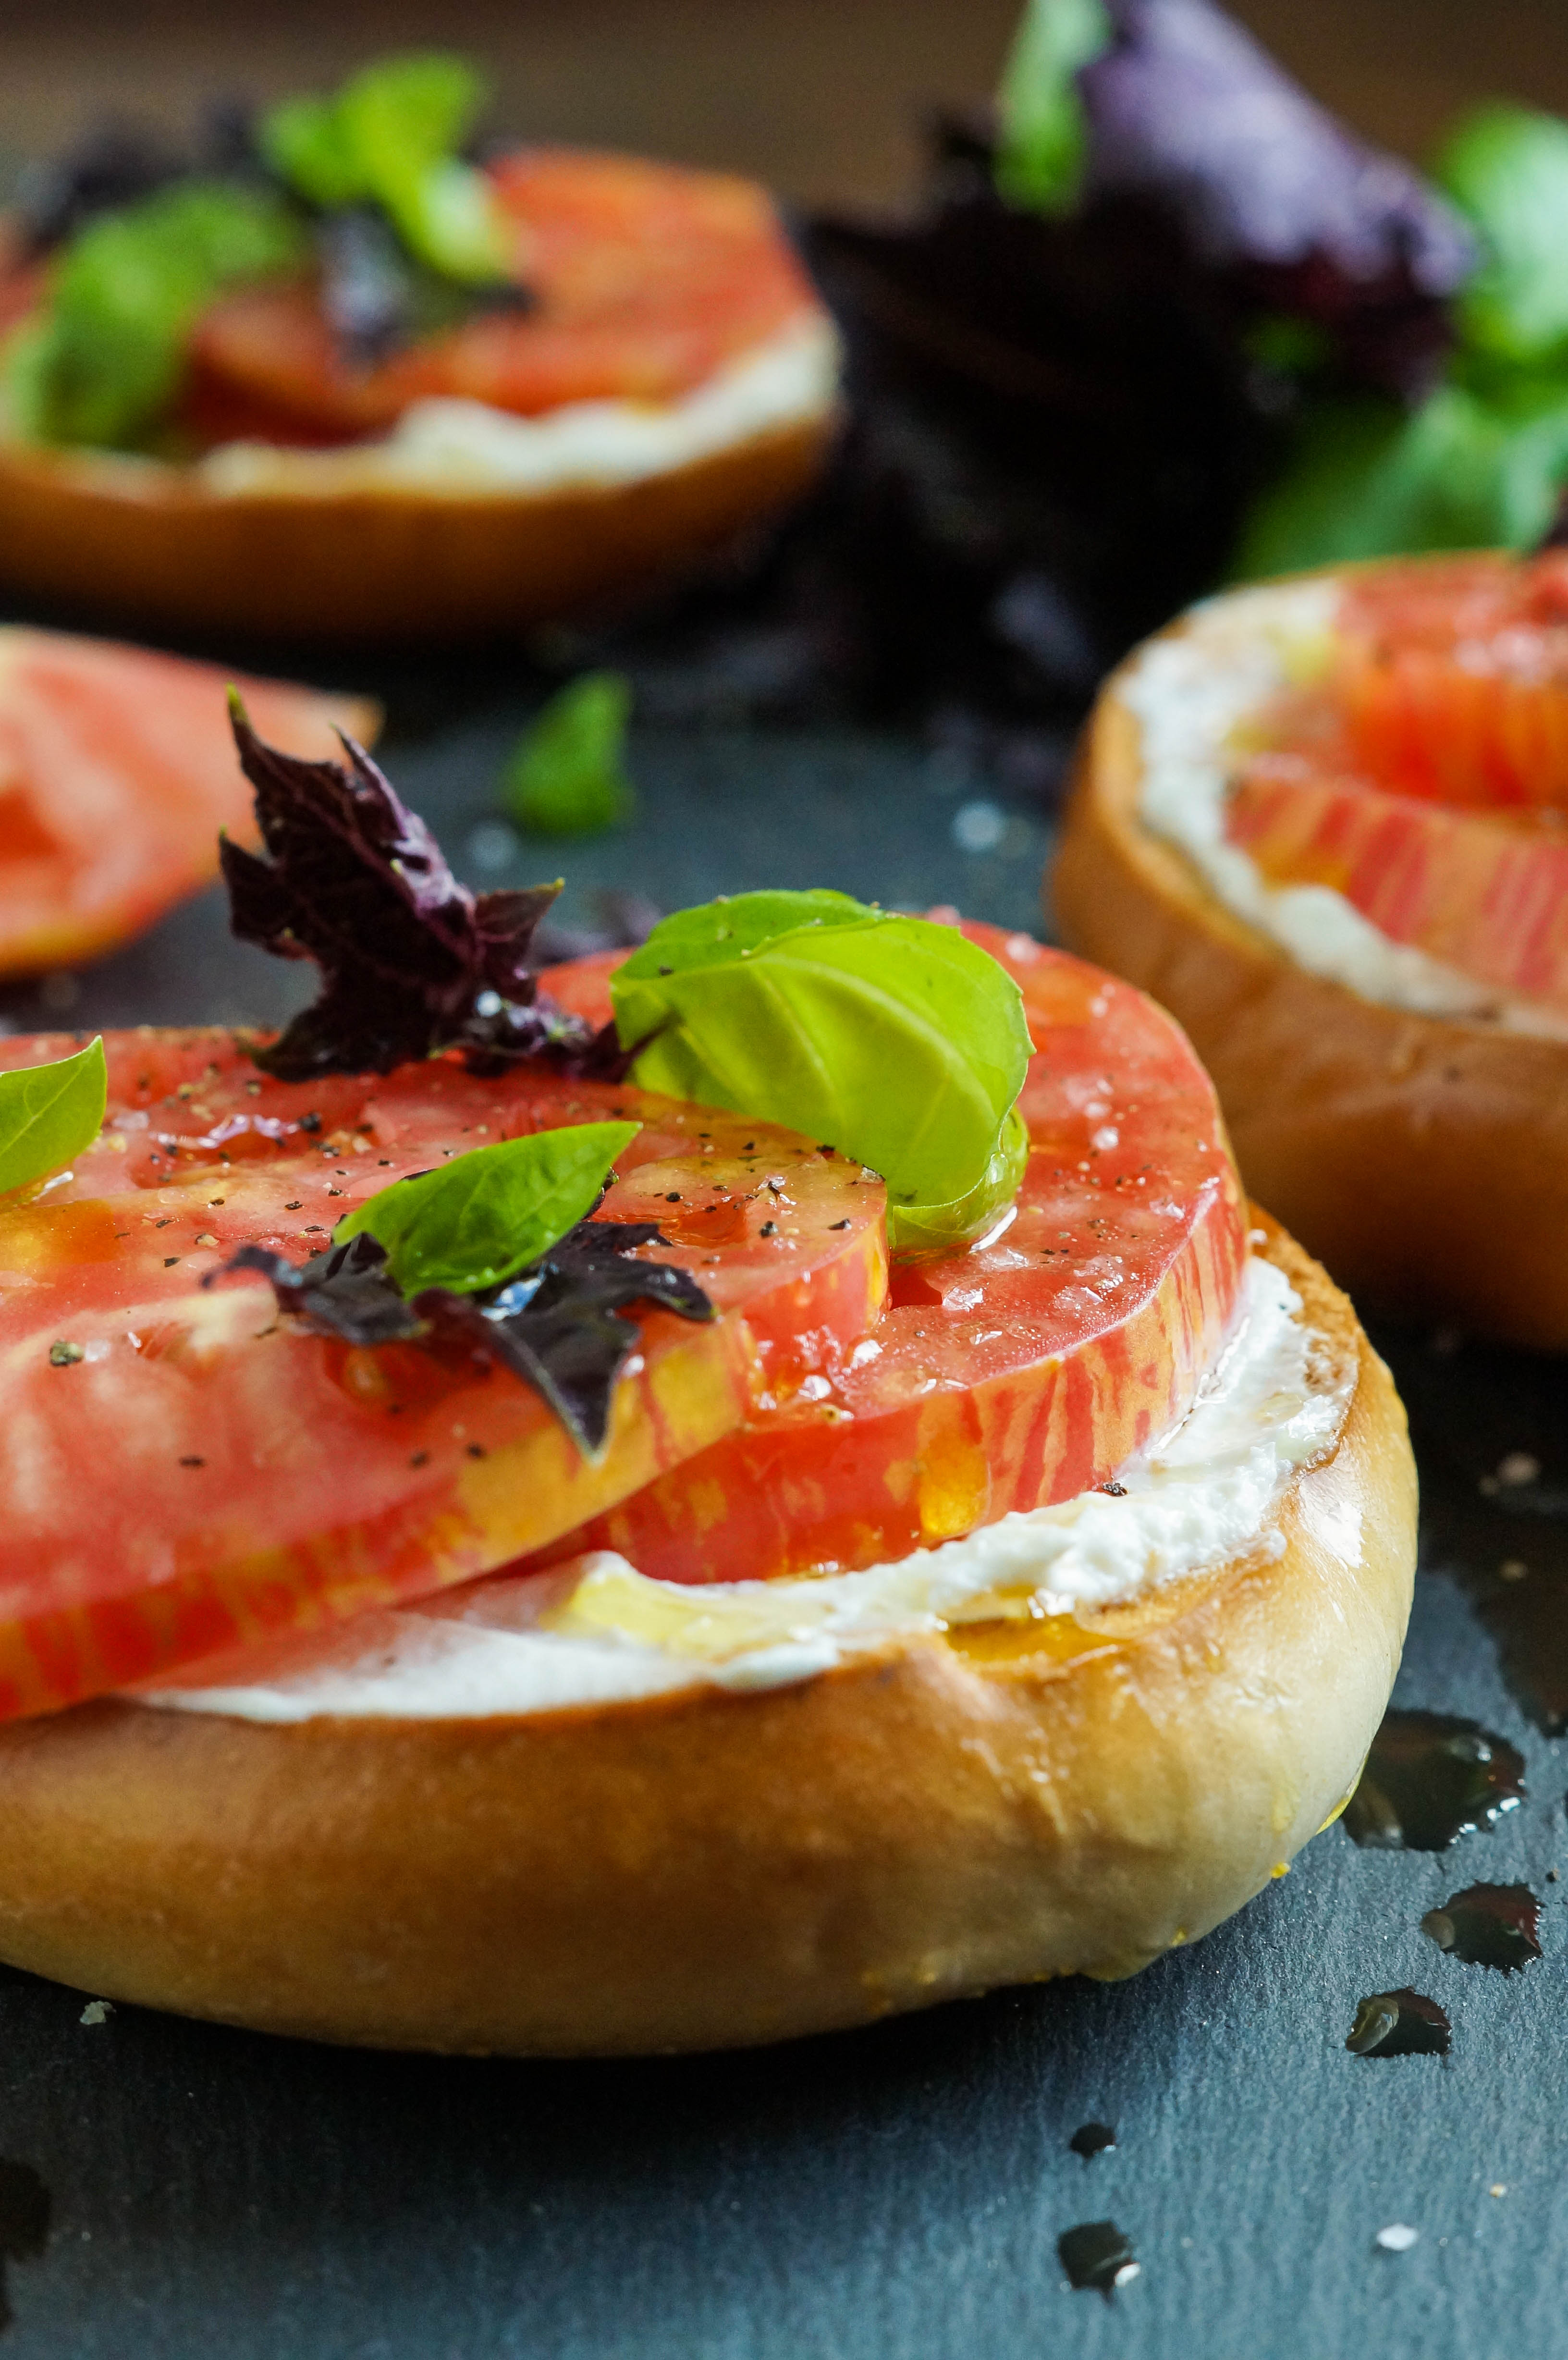 Crisp Toasted Bagel with Fromage Blanc, Tomato, Seas Salt, and Basil (2 of 3)